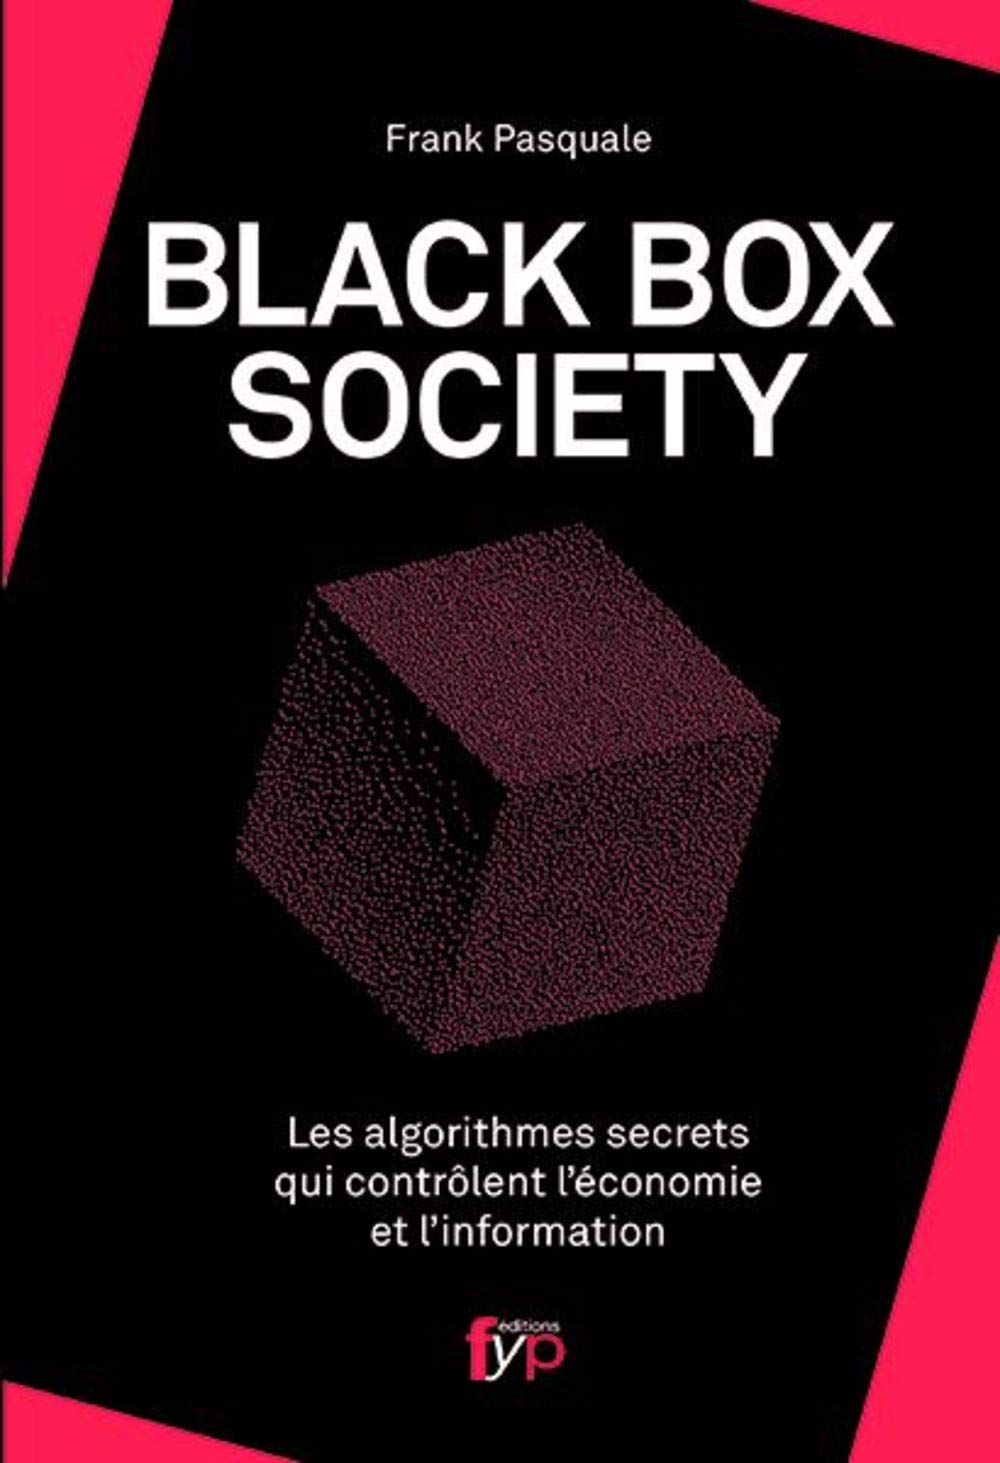 Download The Black Box Society, Les Algorithmes Secrets Qui Contrôlent L'économie Et L'information 